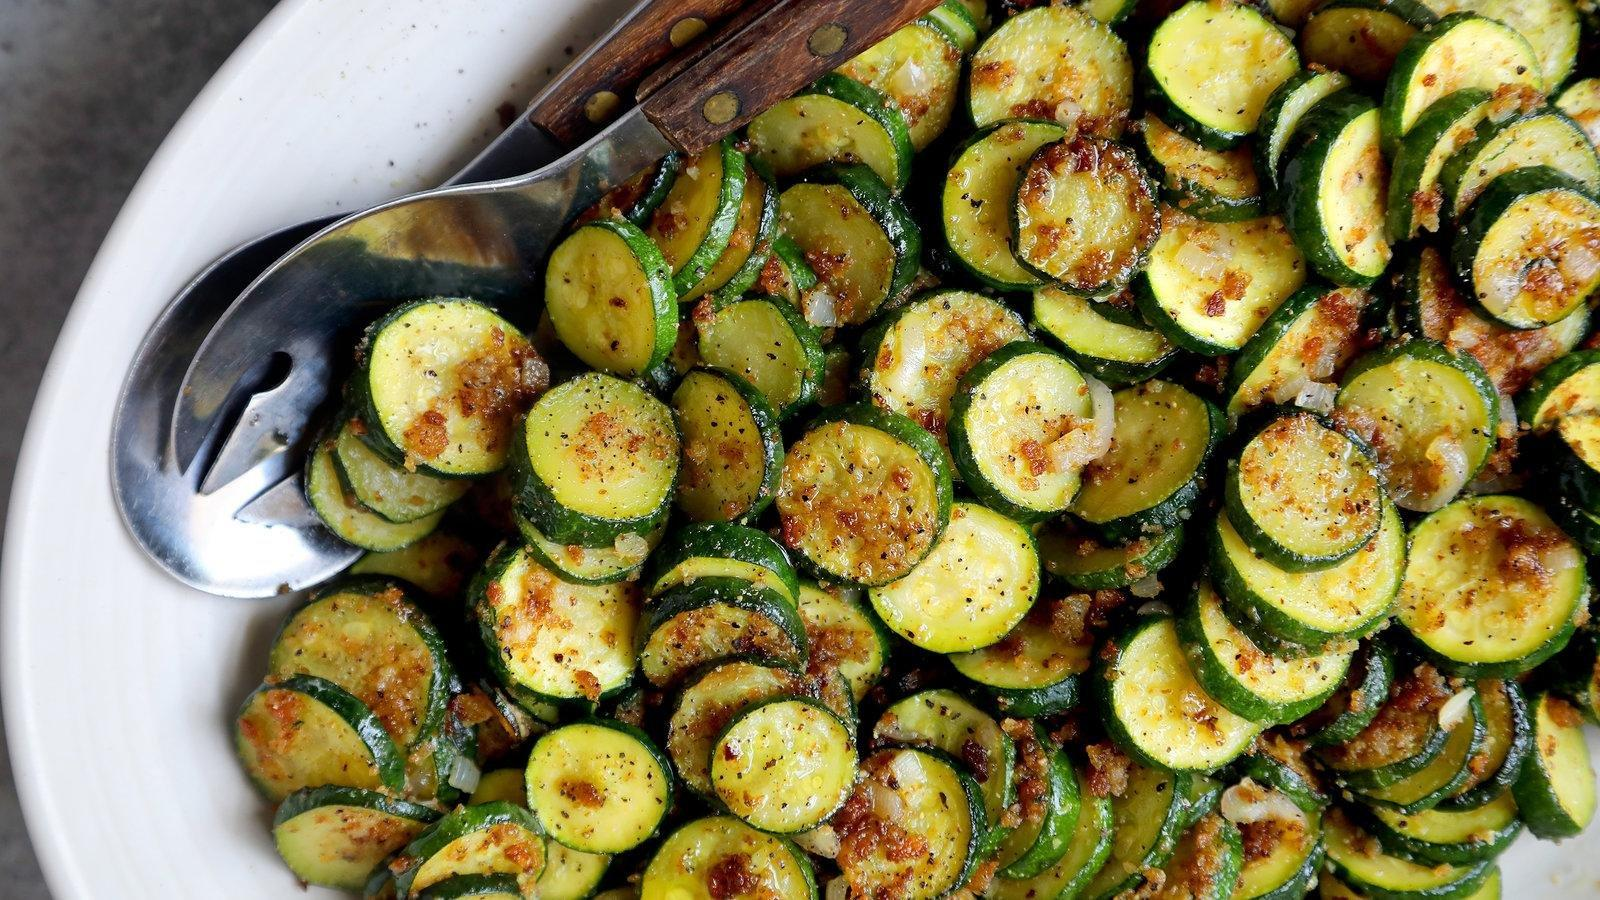 Food For Diabetics: Benefits Of Eating Zucchini For Type 2 Diabetes